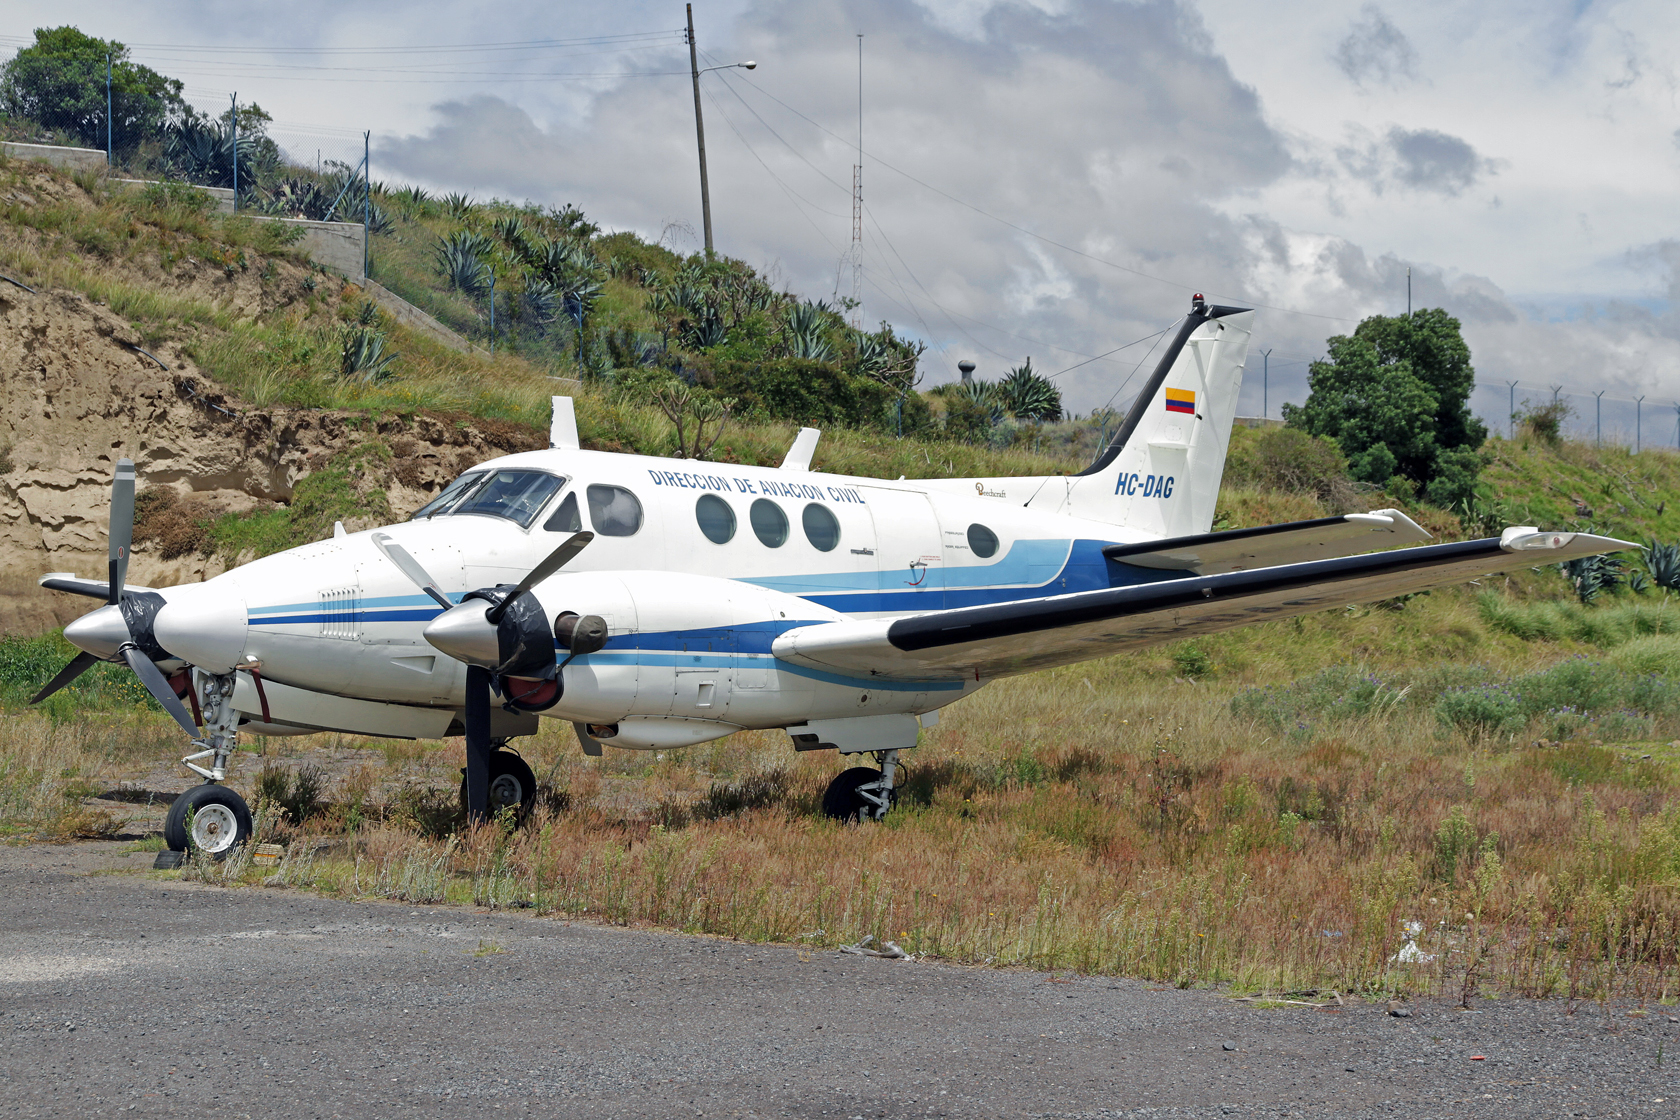 Direccion General de Aviacion Civil de Ecuador Beechcraft King Air E90 HC-DAG - Inzwischen außer Dienst gestellt und durch eine King Air 350 ersetzt.